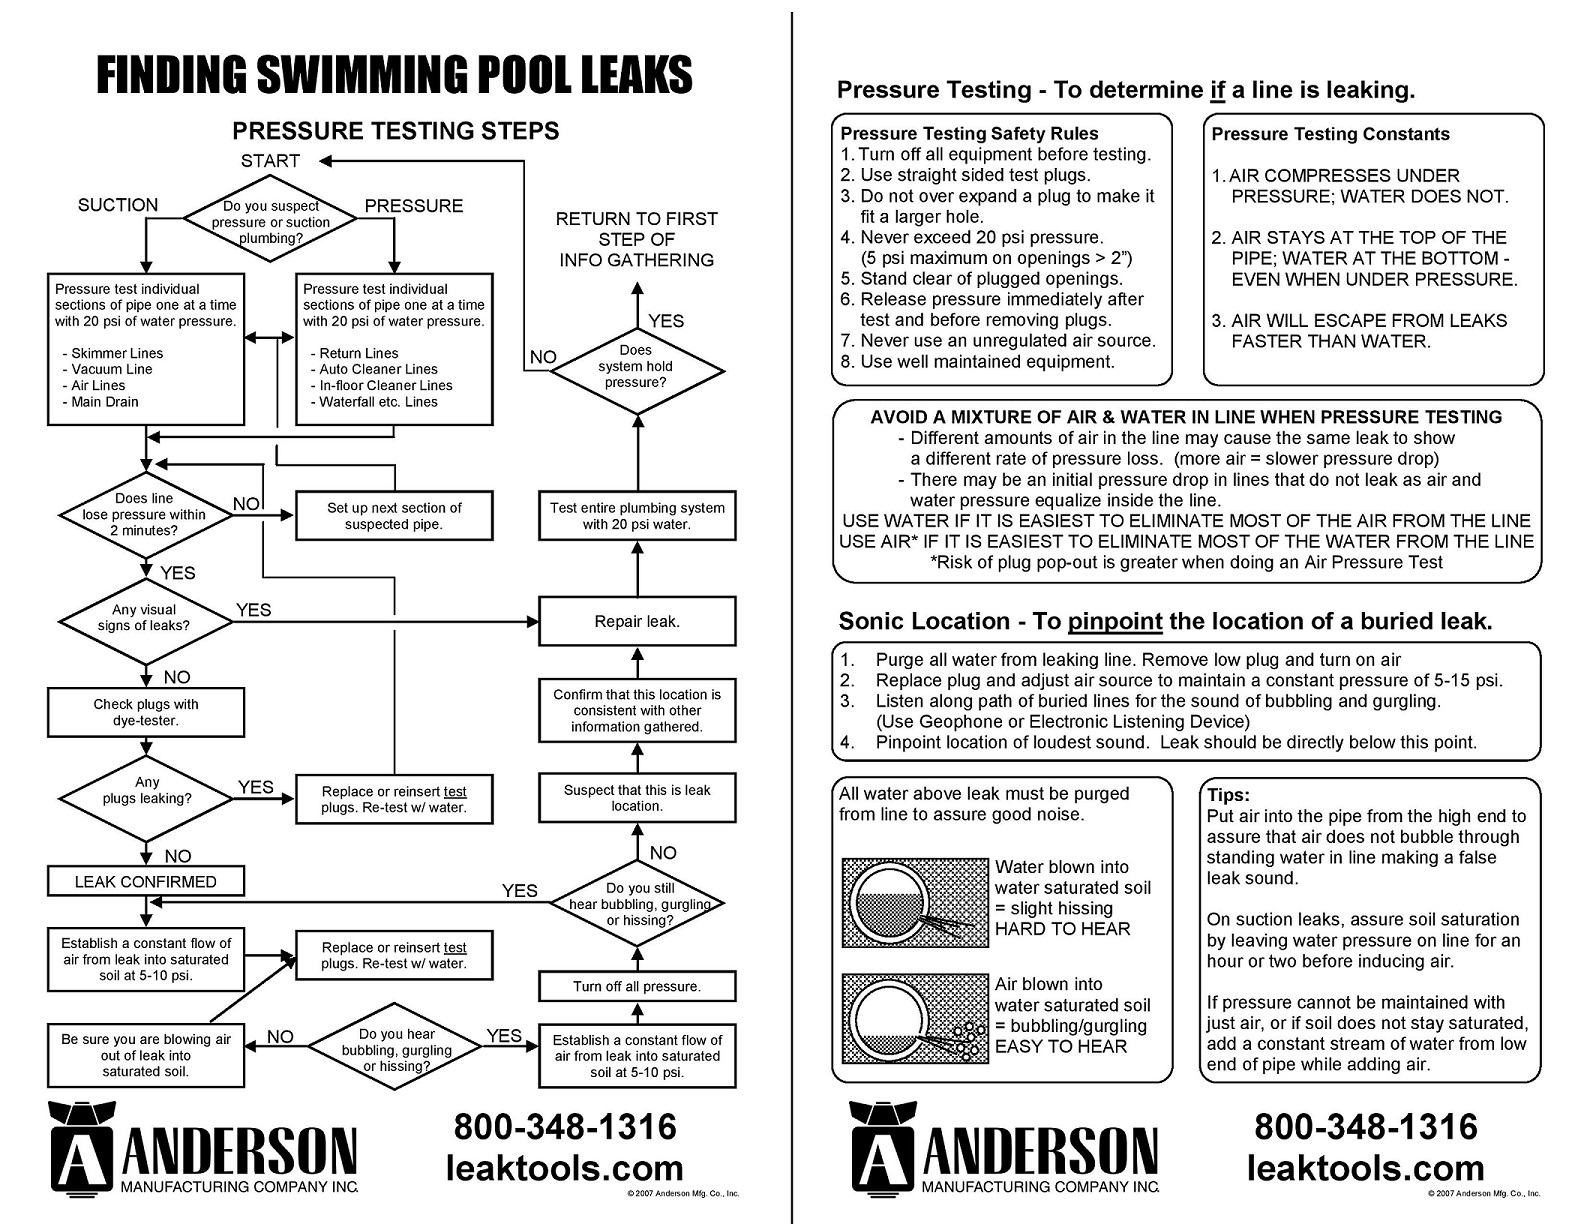 Anderson Manufacturing Company Inc Flow Charts